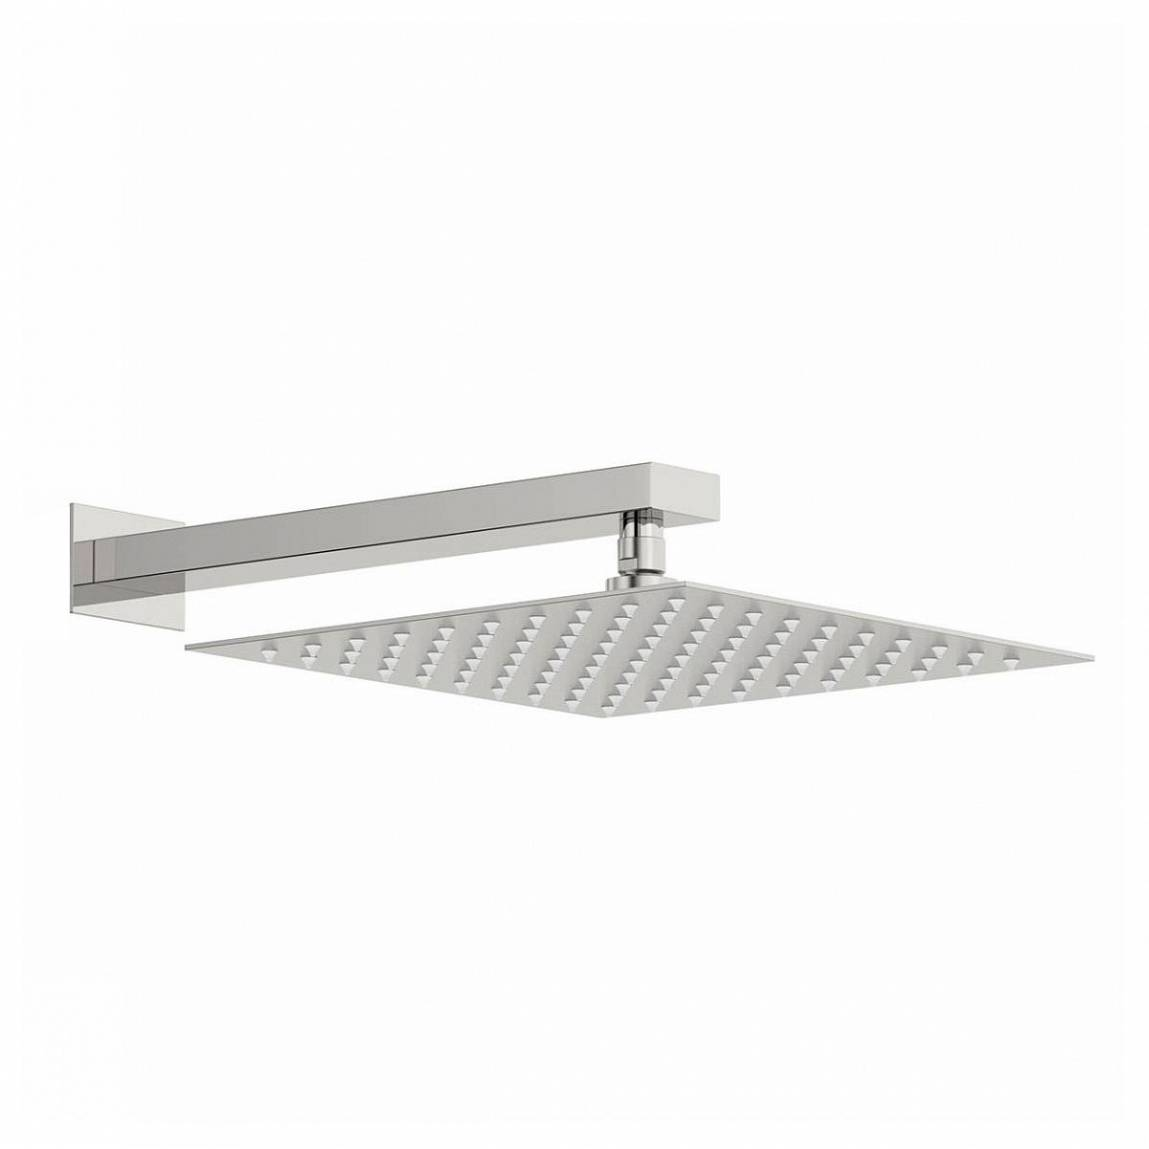 Image of Arcus 300mm Shower Head & Rectangular Wall Arm